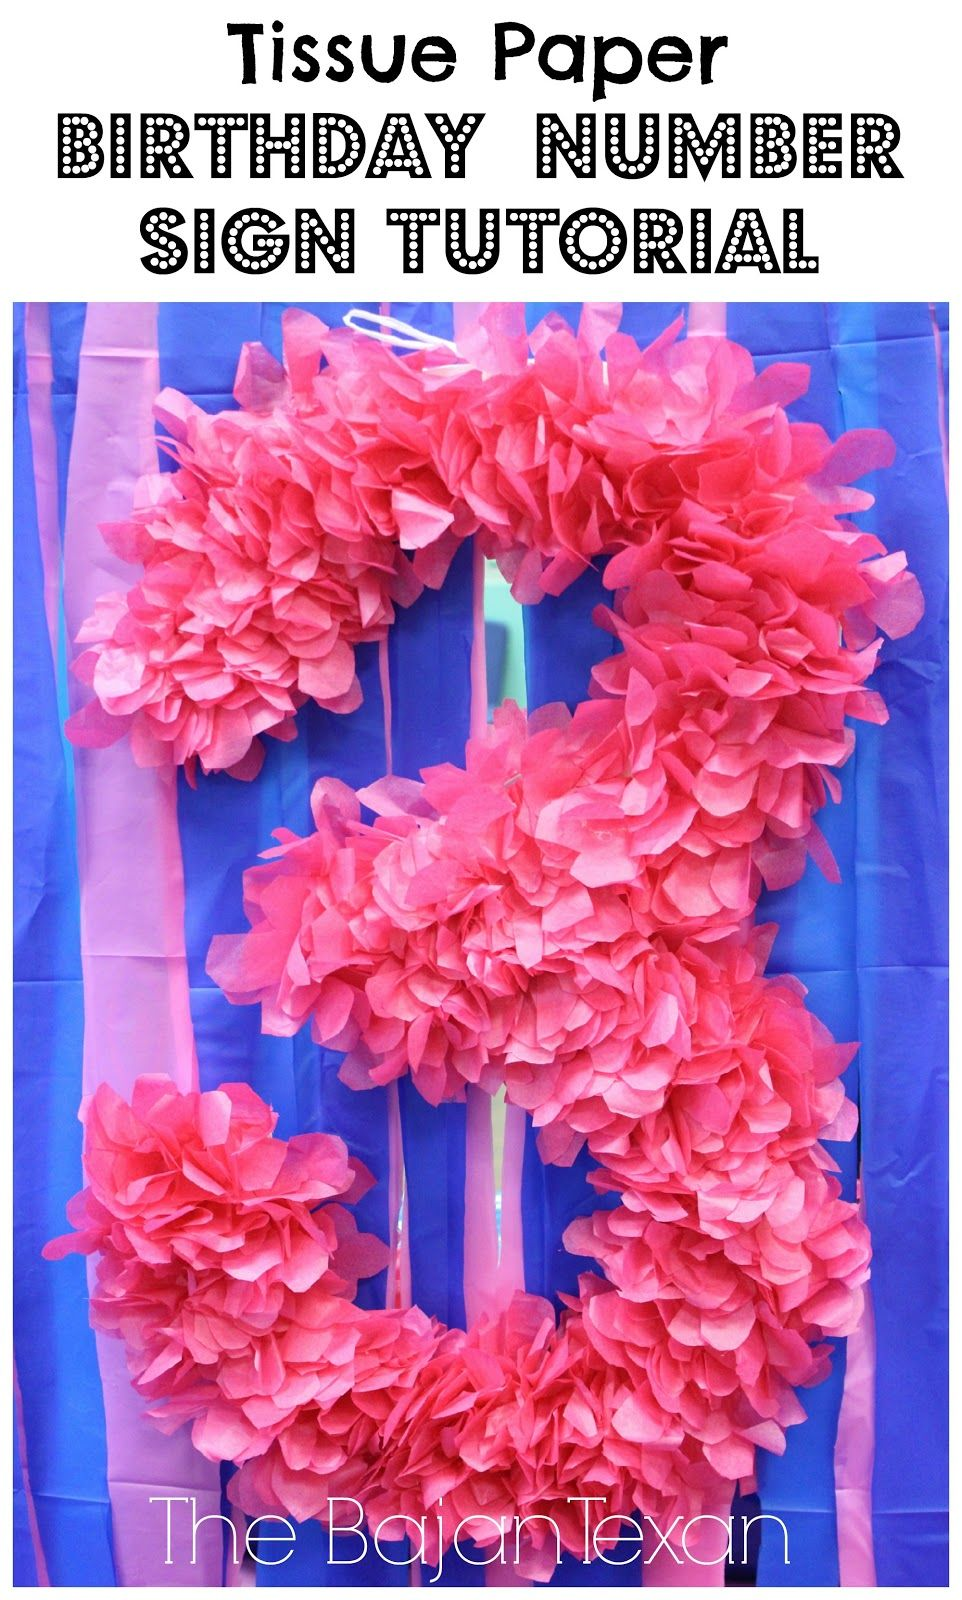 DIY Party Decor Tissue Paper Birthday Number Sign Tutorial